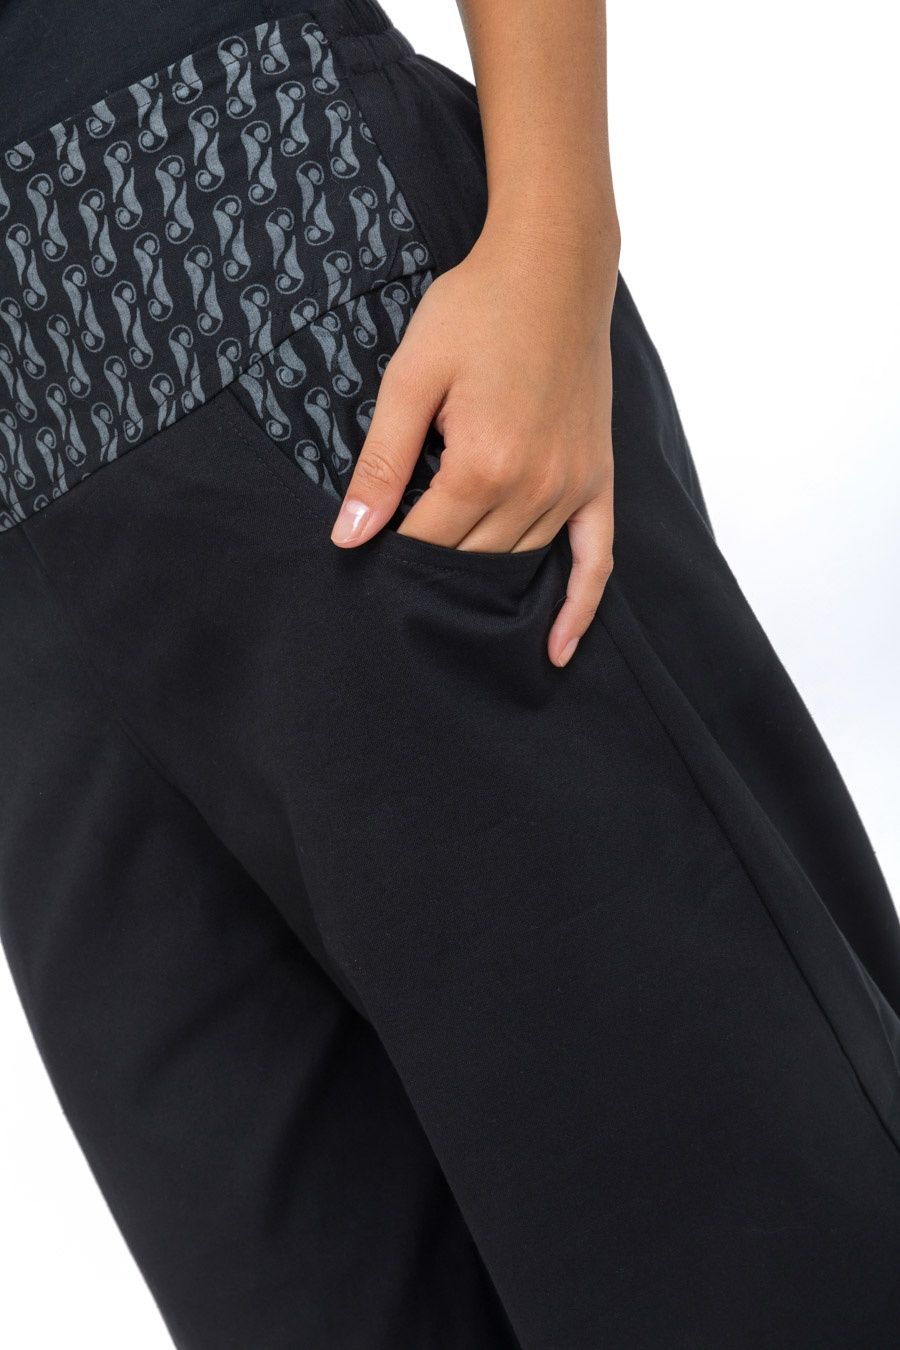 Women's Danskin Pants. Clothing. Women. Women's Danskin Pants. Store availability. Search your store by entering zip code or city, state. Go. Sort. Danskin Now Women's Cotton Stir Up Pant. Product - Danskin Now Women's Core Active French Terry Jogger. Product Image. Price $ Product Title.